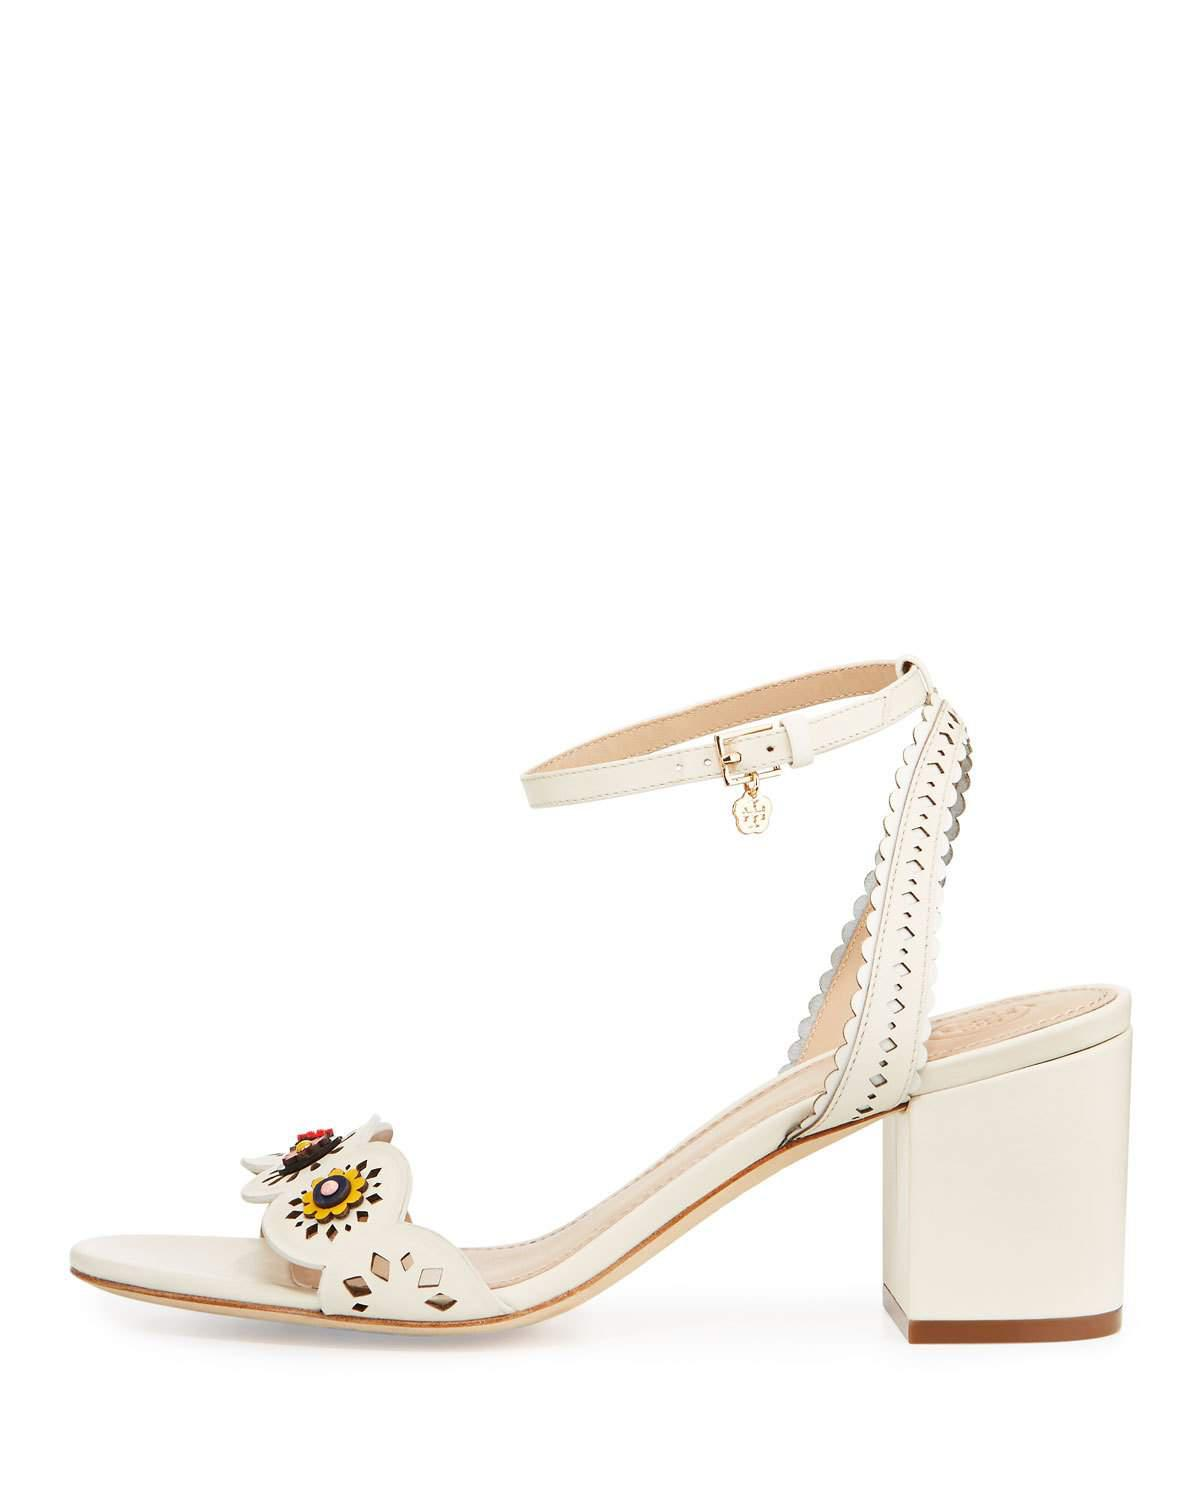 a10a9d28d6d Lyst - Tory Burch Marguerite Perforated Sandal in White